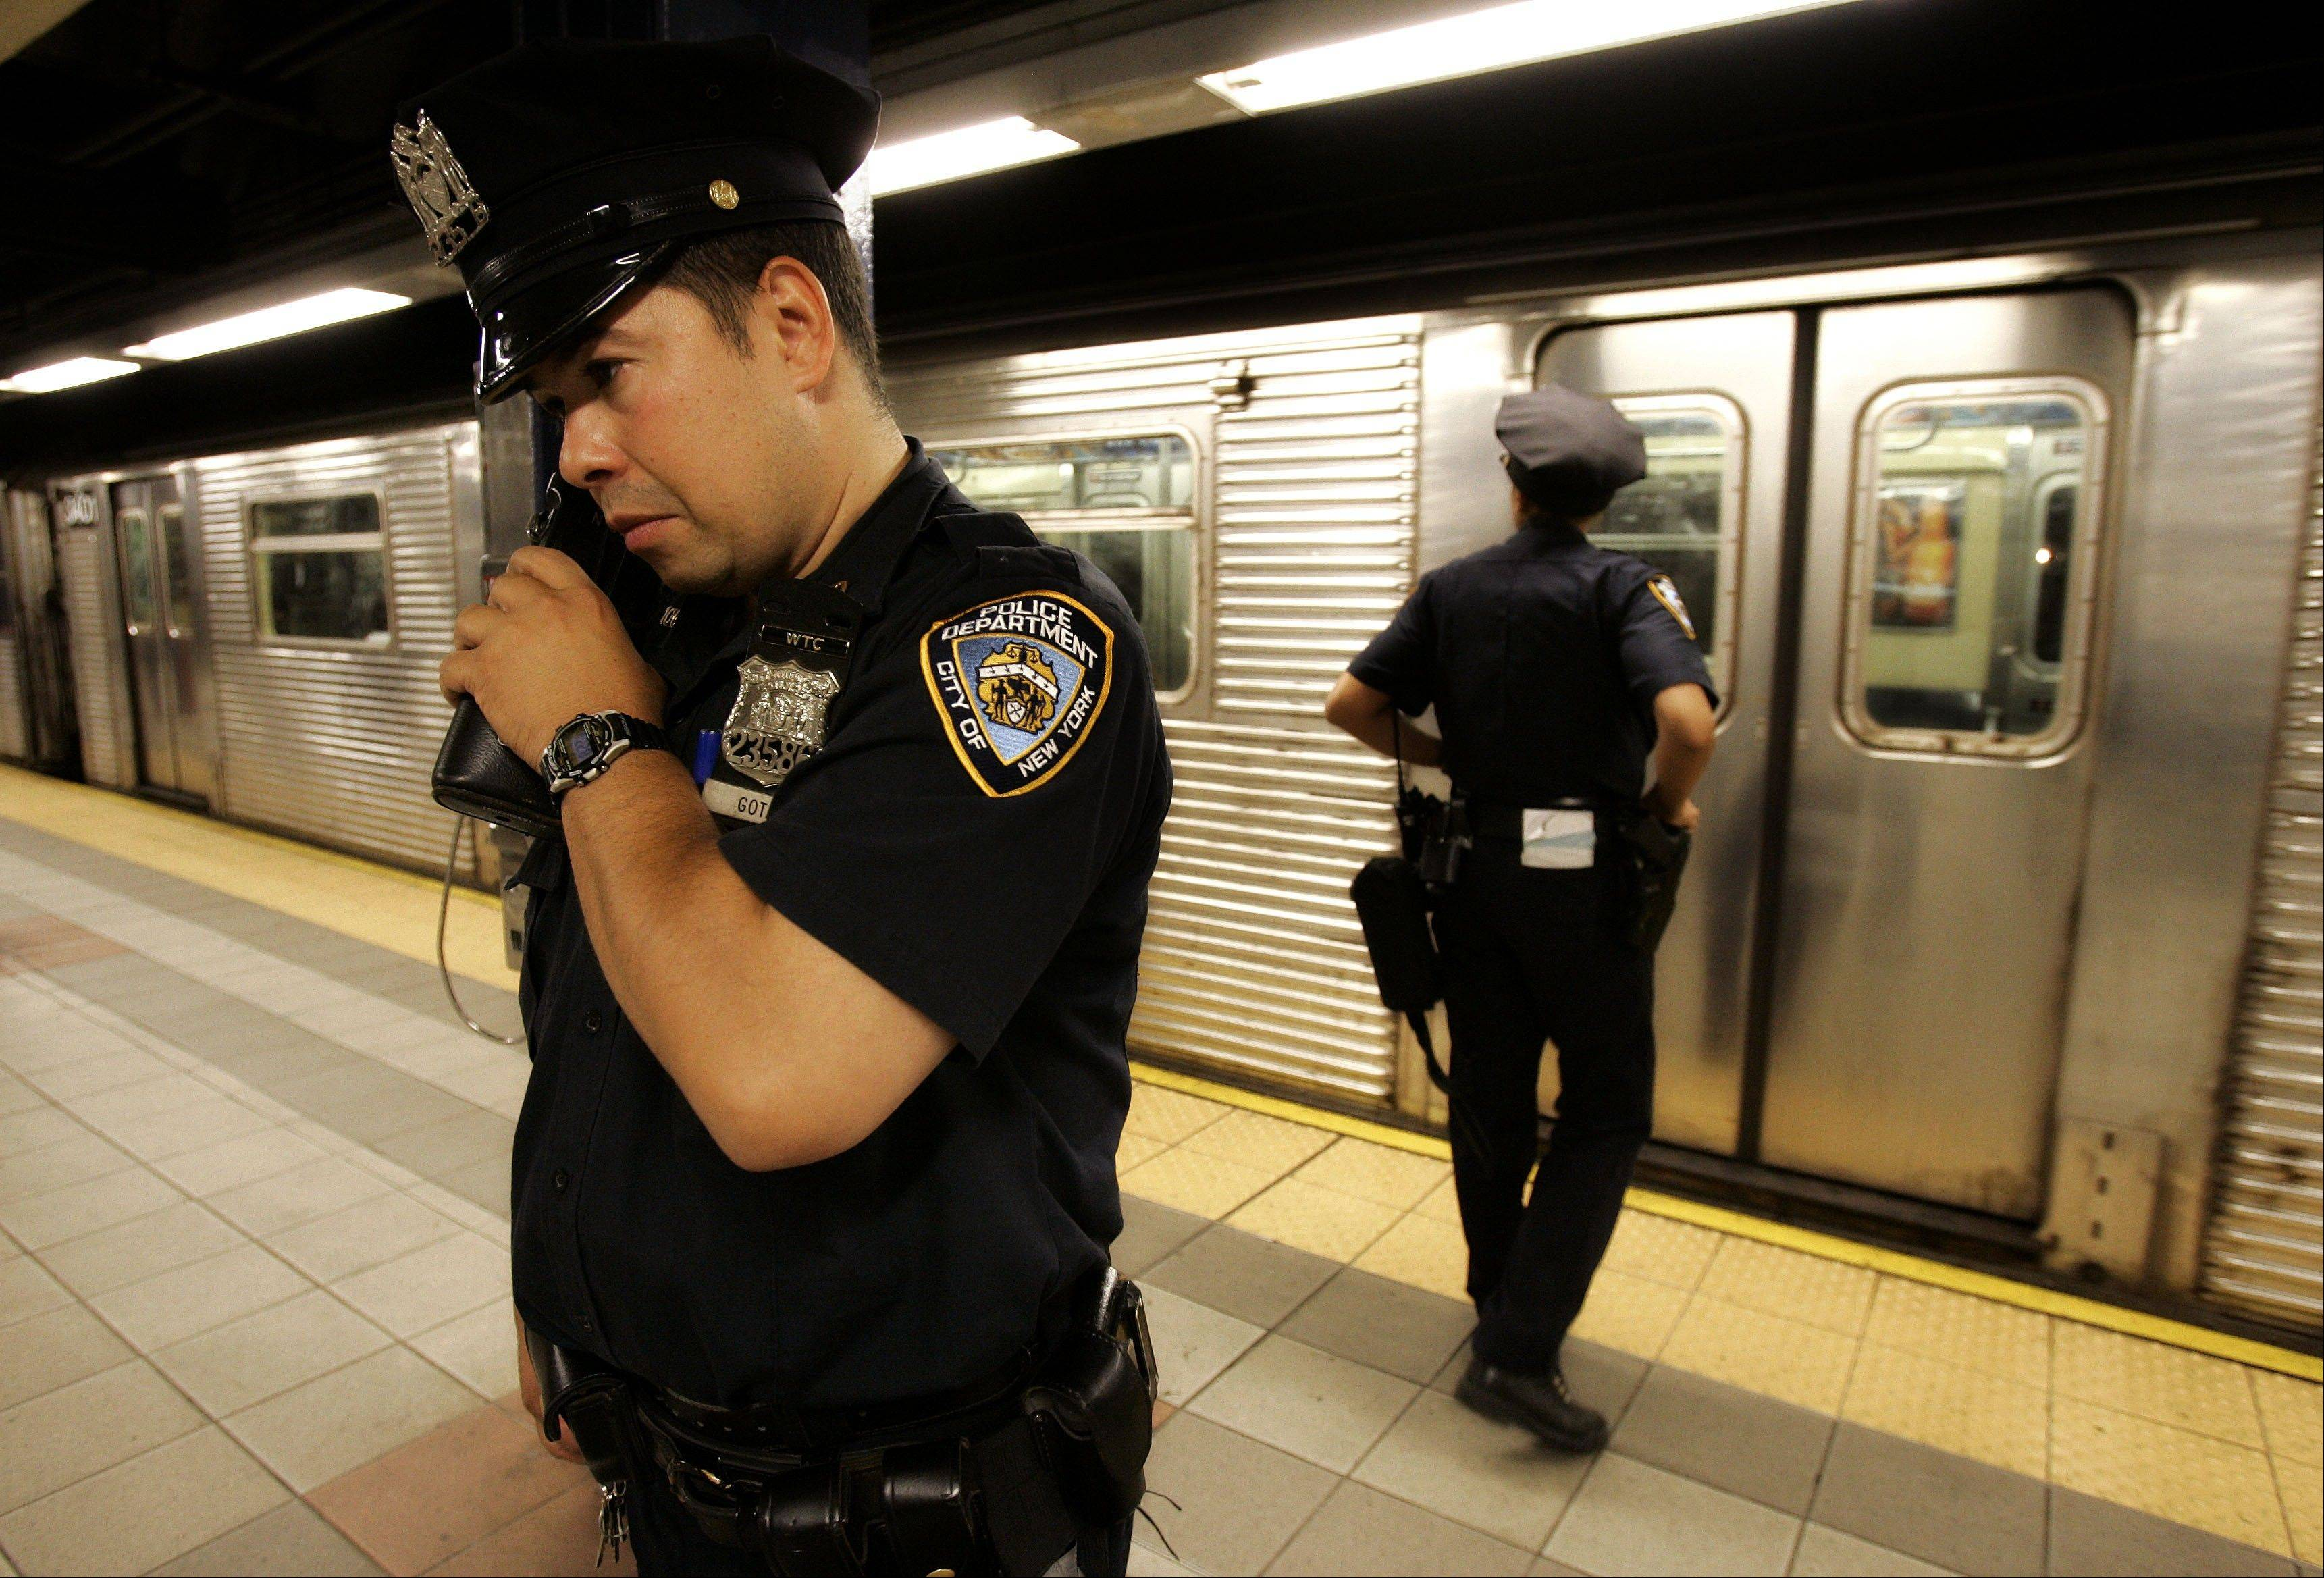 New York police officer Frank Gotay listens to a message on his radio as his partner Yolanda Cortes waits for a subway car�s doors to open while performing random checks along the platform at the 42nd Street station in New York.